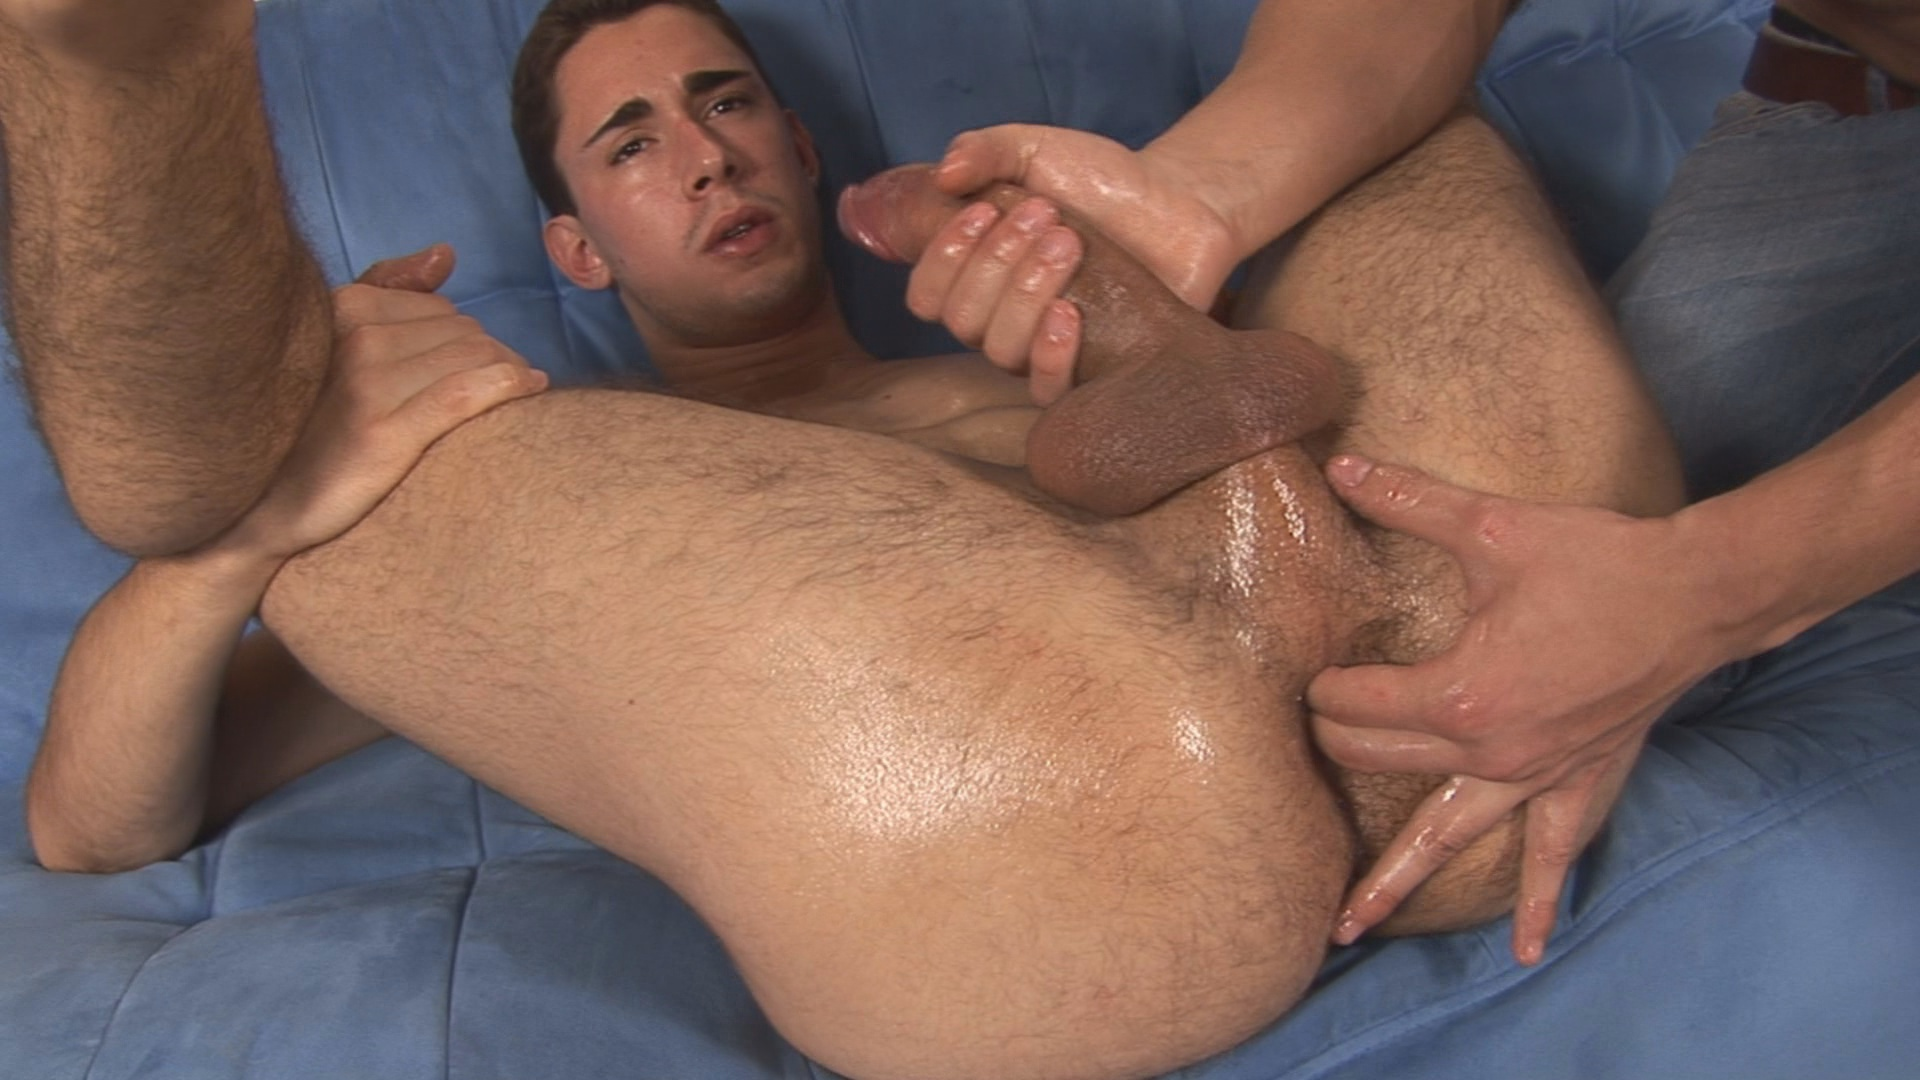 Helping hand gay video